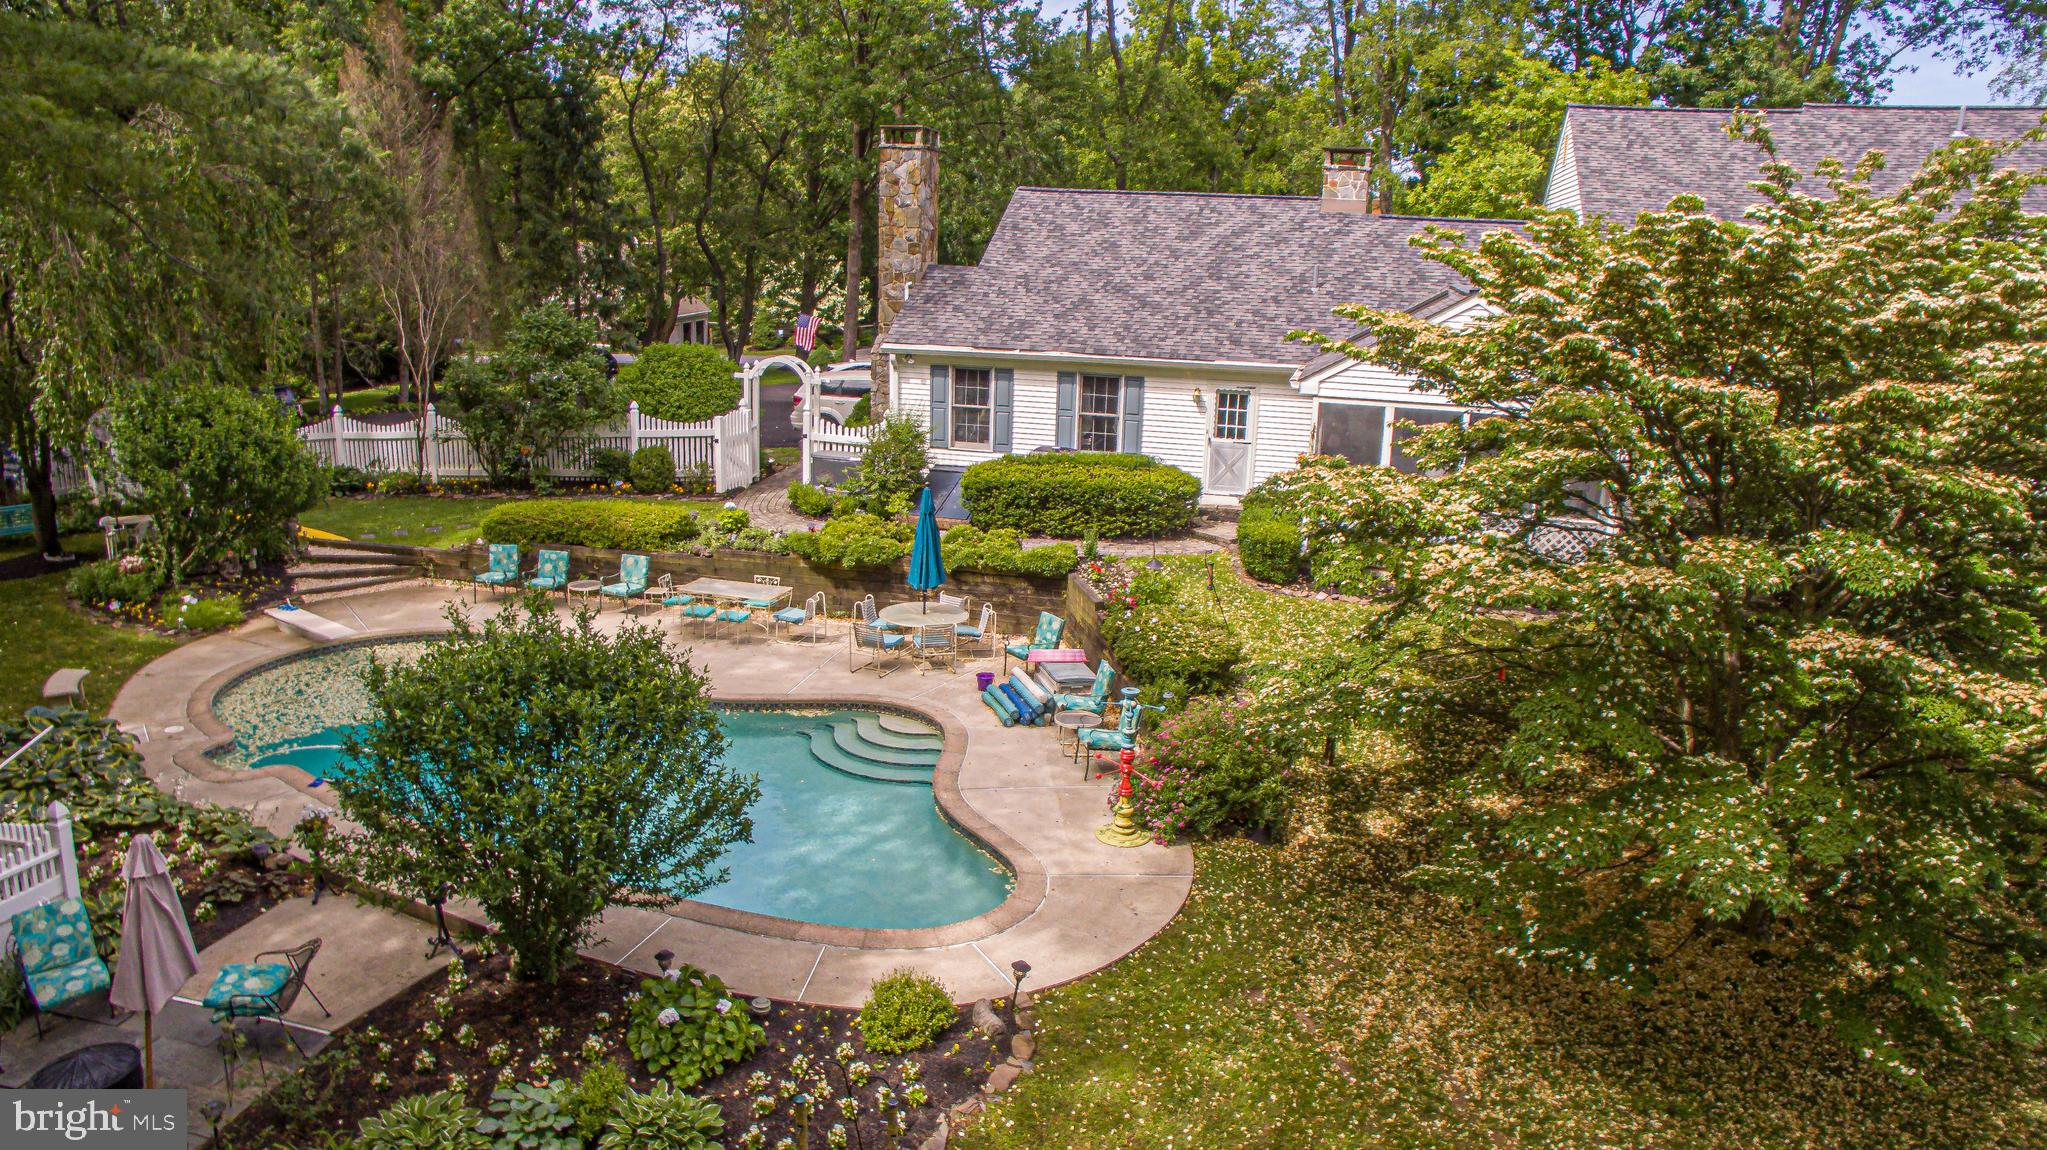 50 BLUE STONE DRIVE  Home Listings - John and Mary Luca Hockessin, Greenville, Newark, Middletown, Bear, North Wilmington, Wilmington, Brandywine Hundred, Pike Creek, Smyrna, Townsend, Dover, Rehoboth, Bethany, Lewes, Milford, Malvern, Avondale, Landenberg